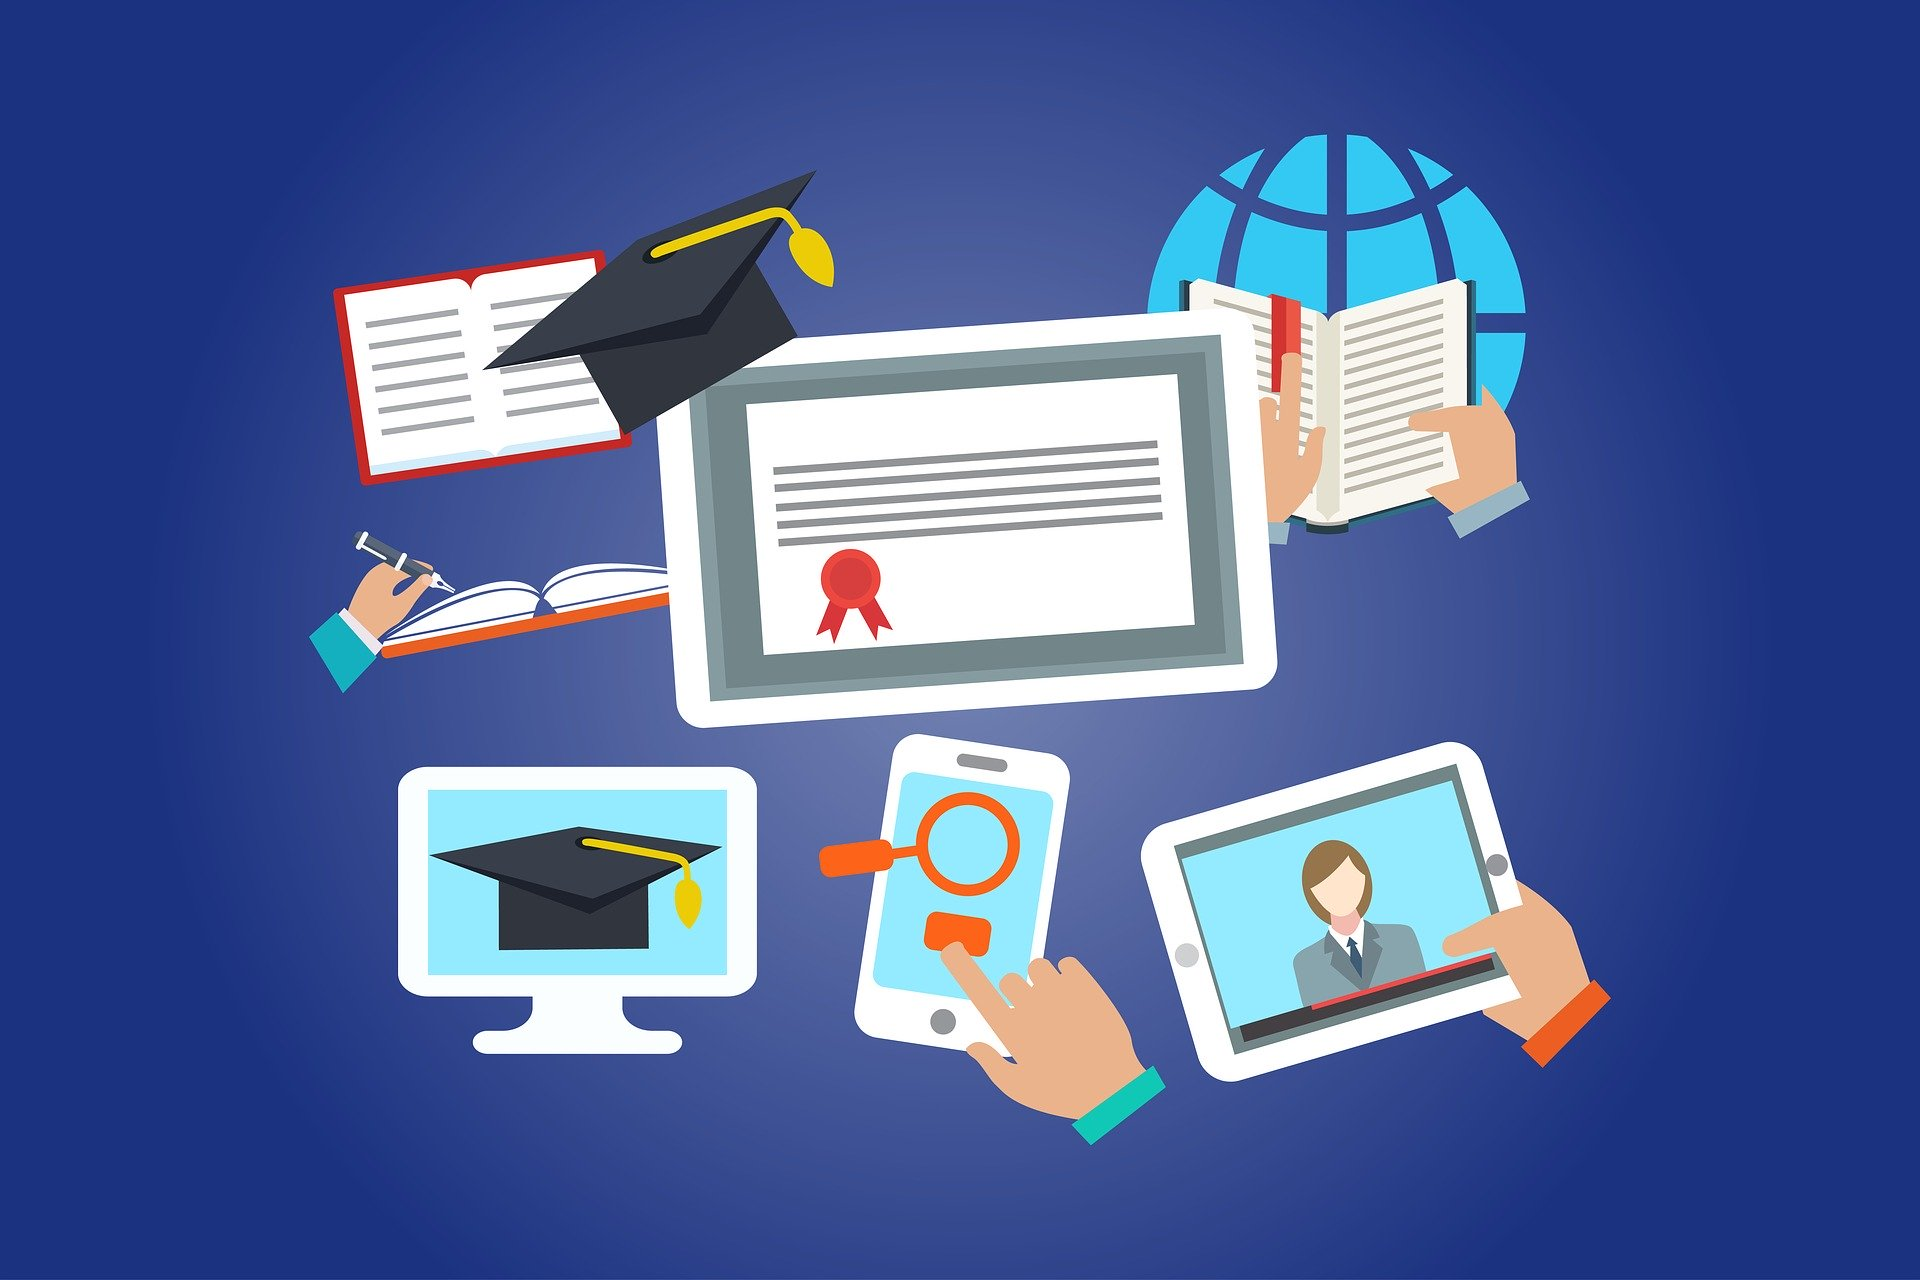 graphics related to online education